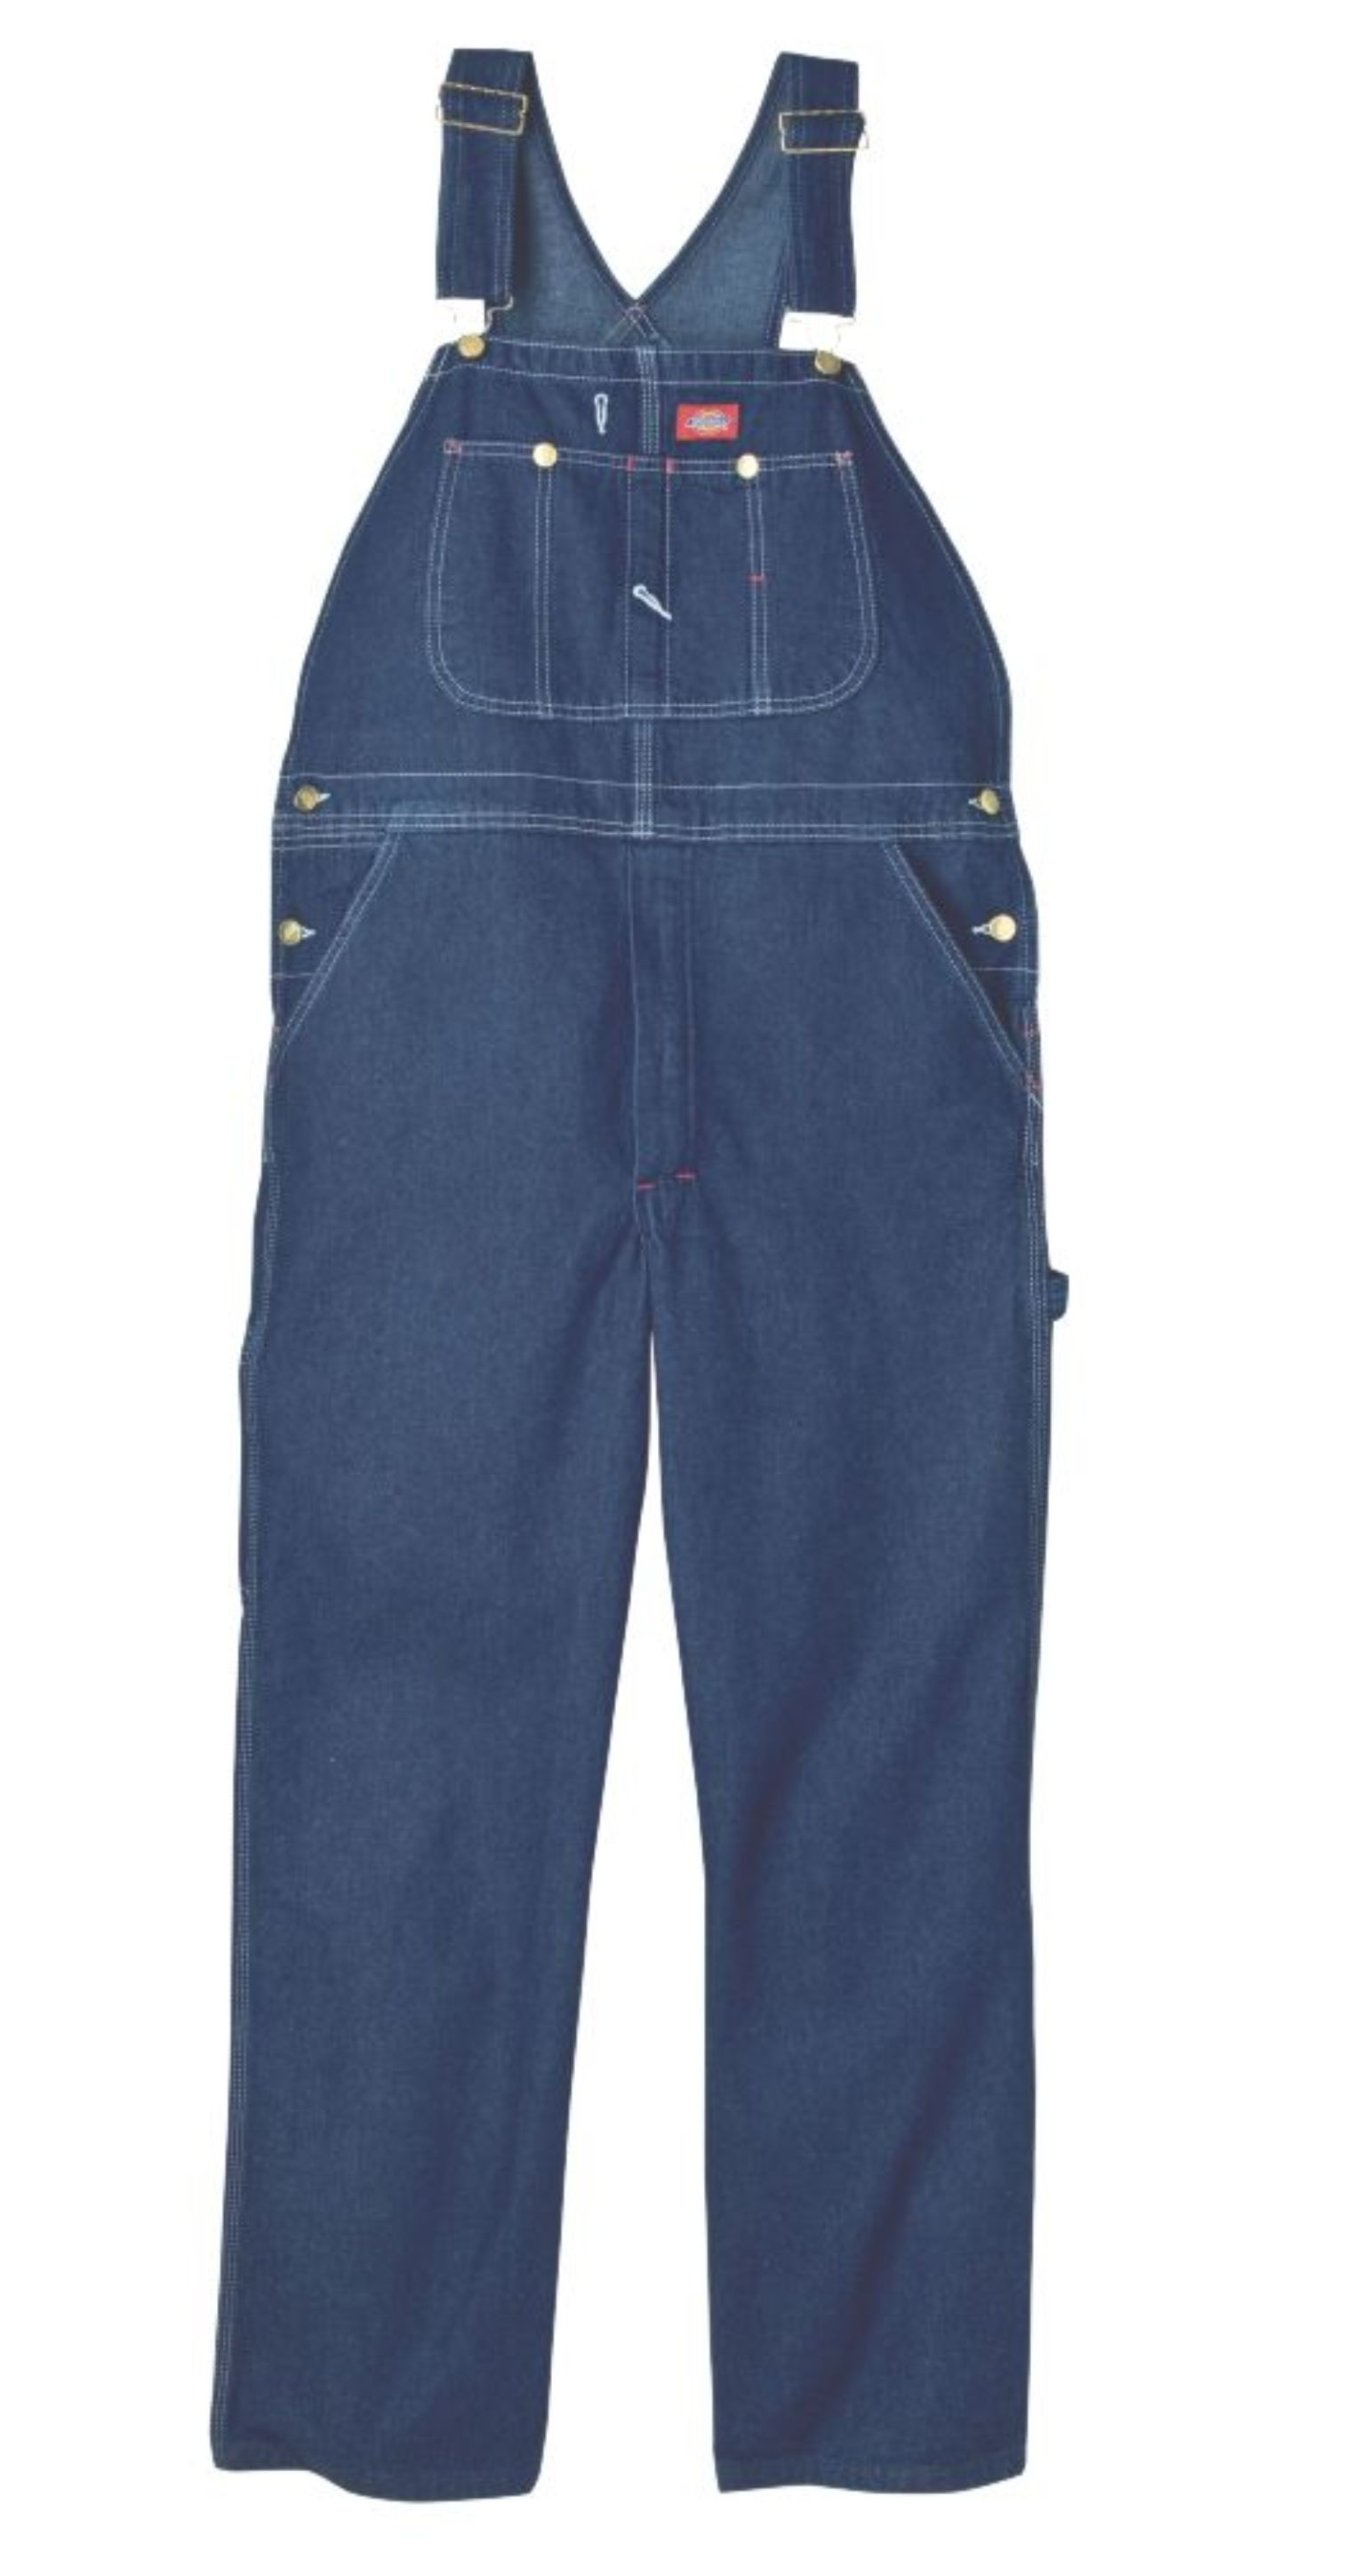 Dickies Men's Denim Bib Overall, Stone Washed Indigo Blue, 36 x 30